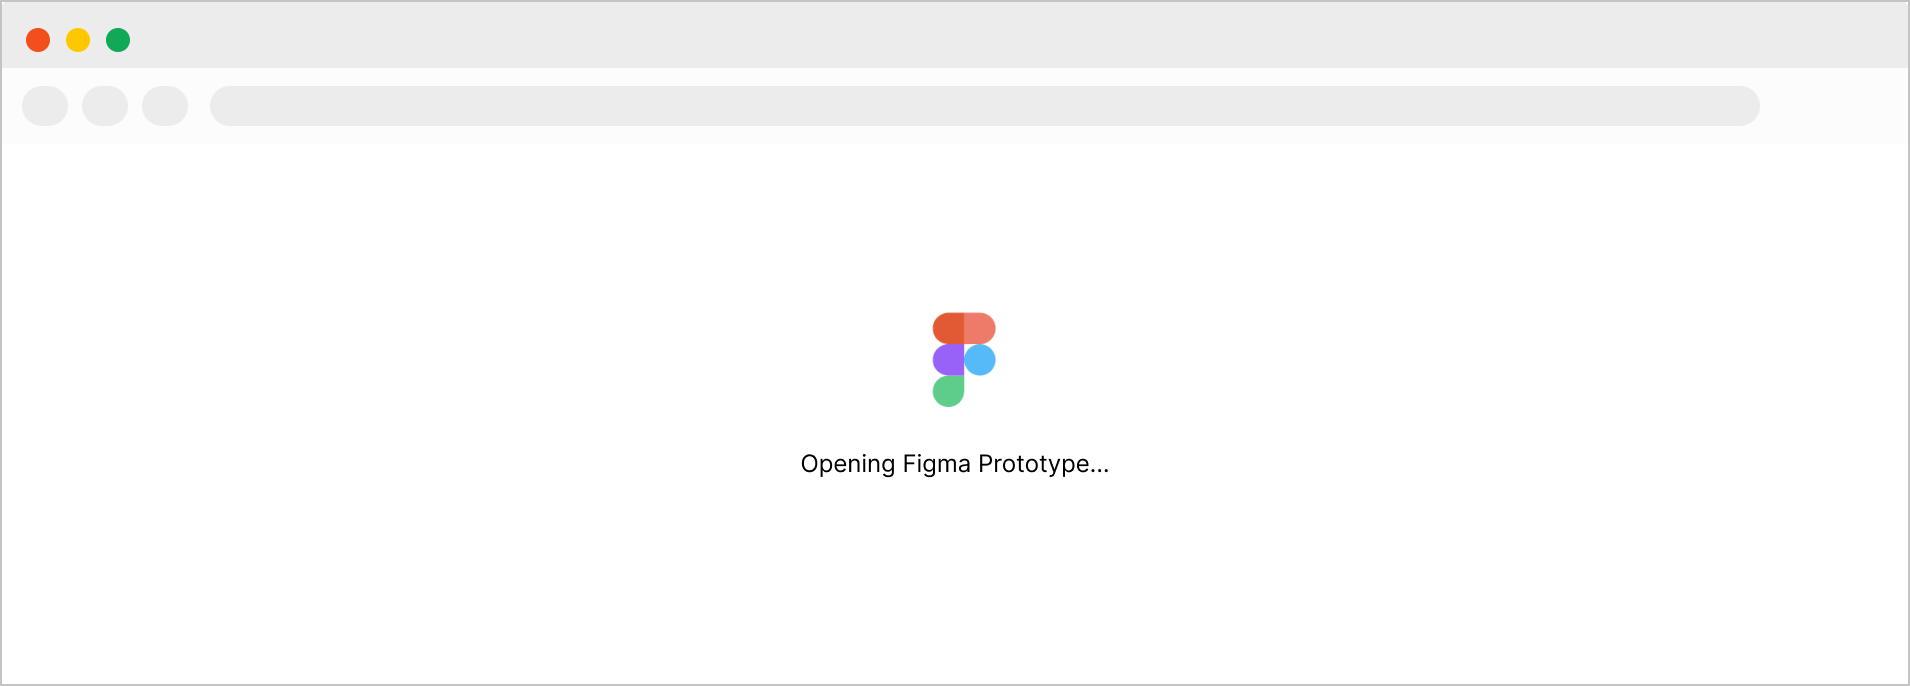 Loading screen that lets viewers know they are loading a Figma prototype